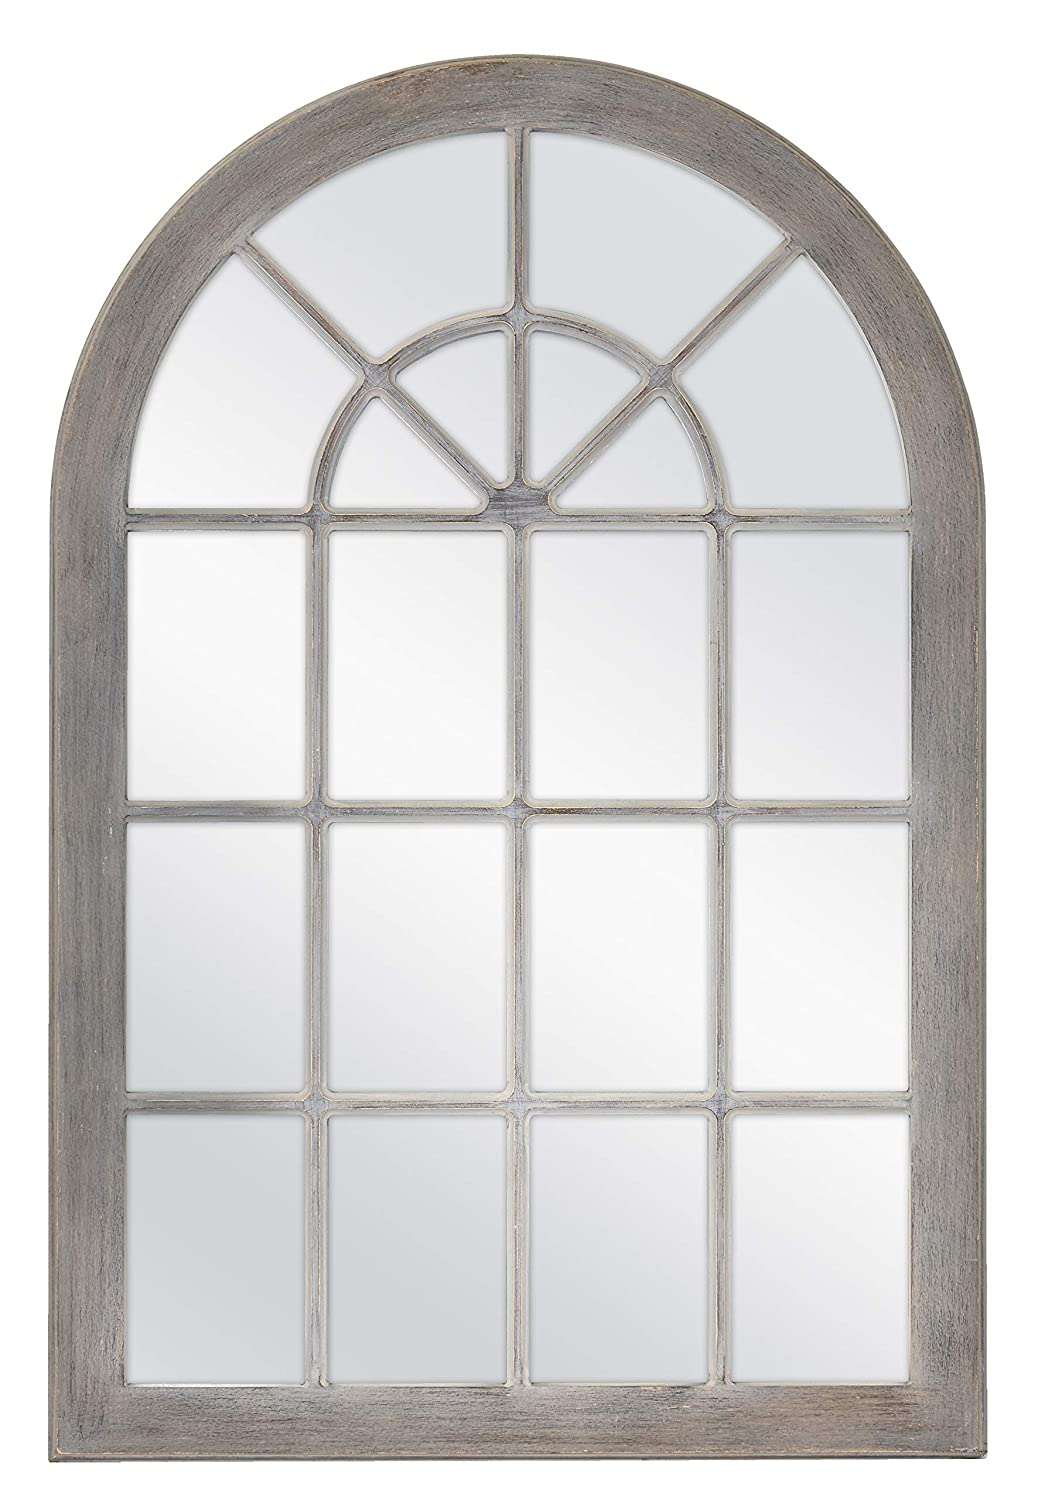 MCS Countryside Arched Windowpane Wall, Gray, 24×36 Inch Overall Size Mirror,